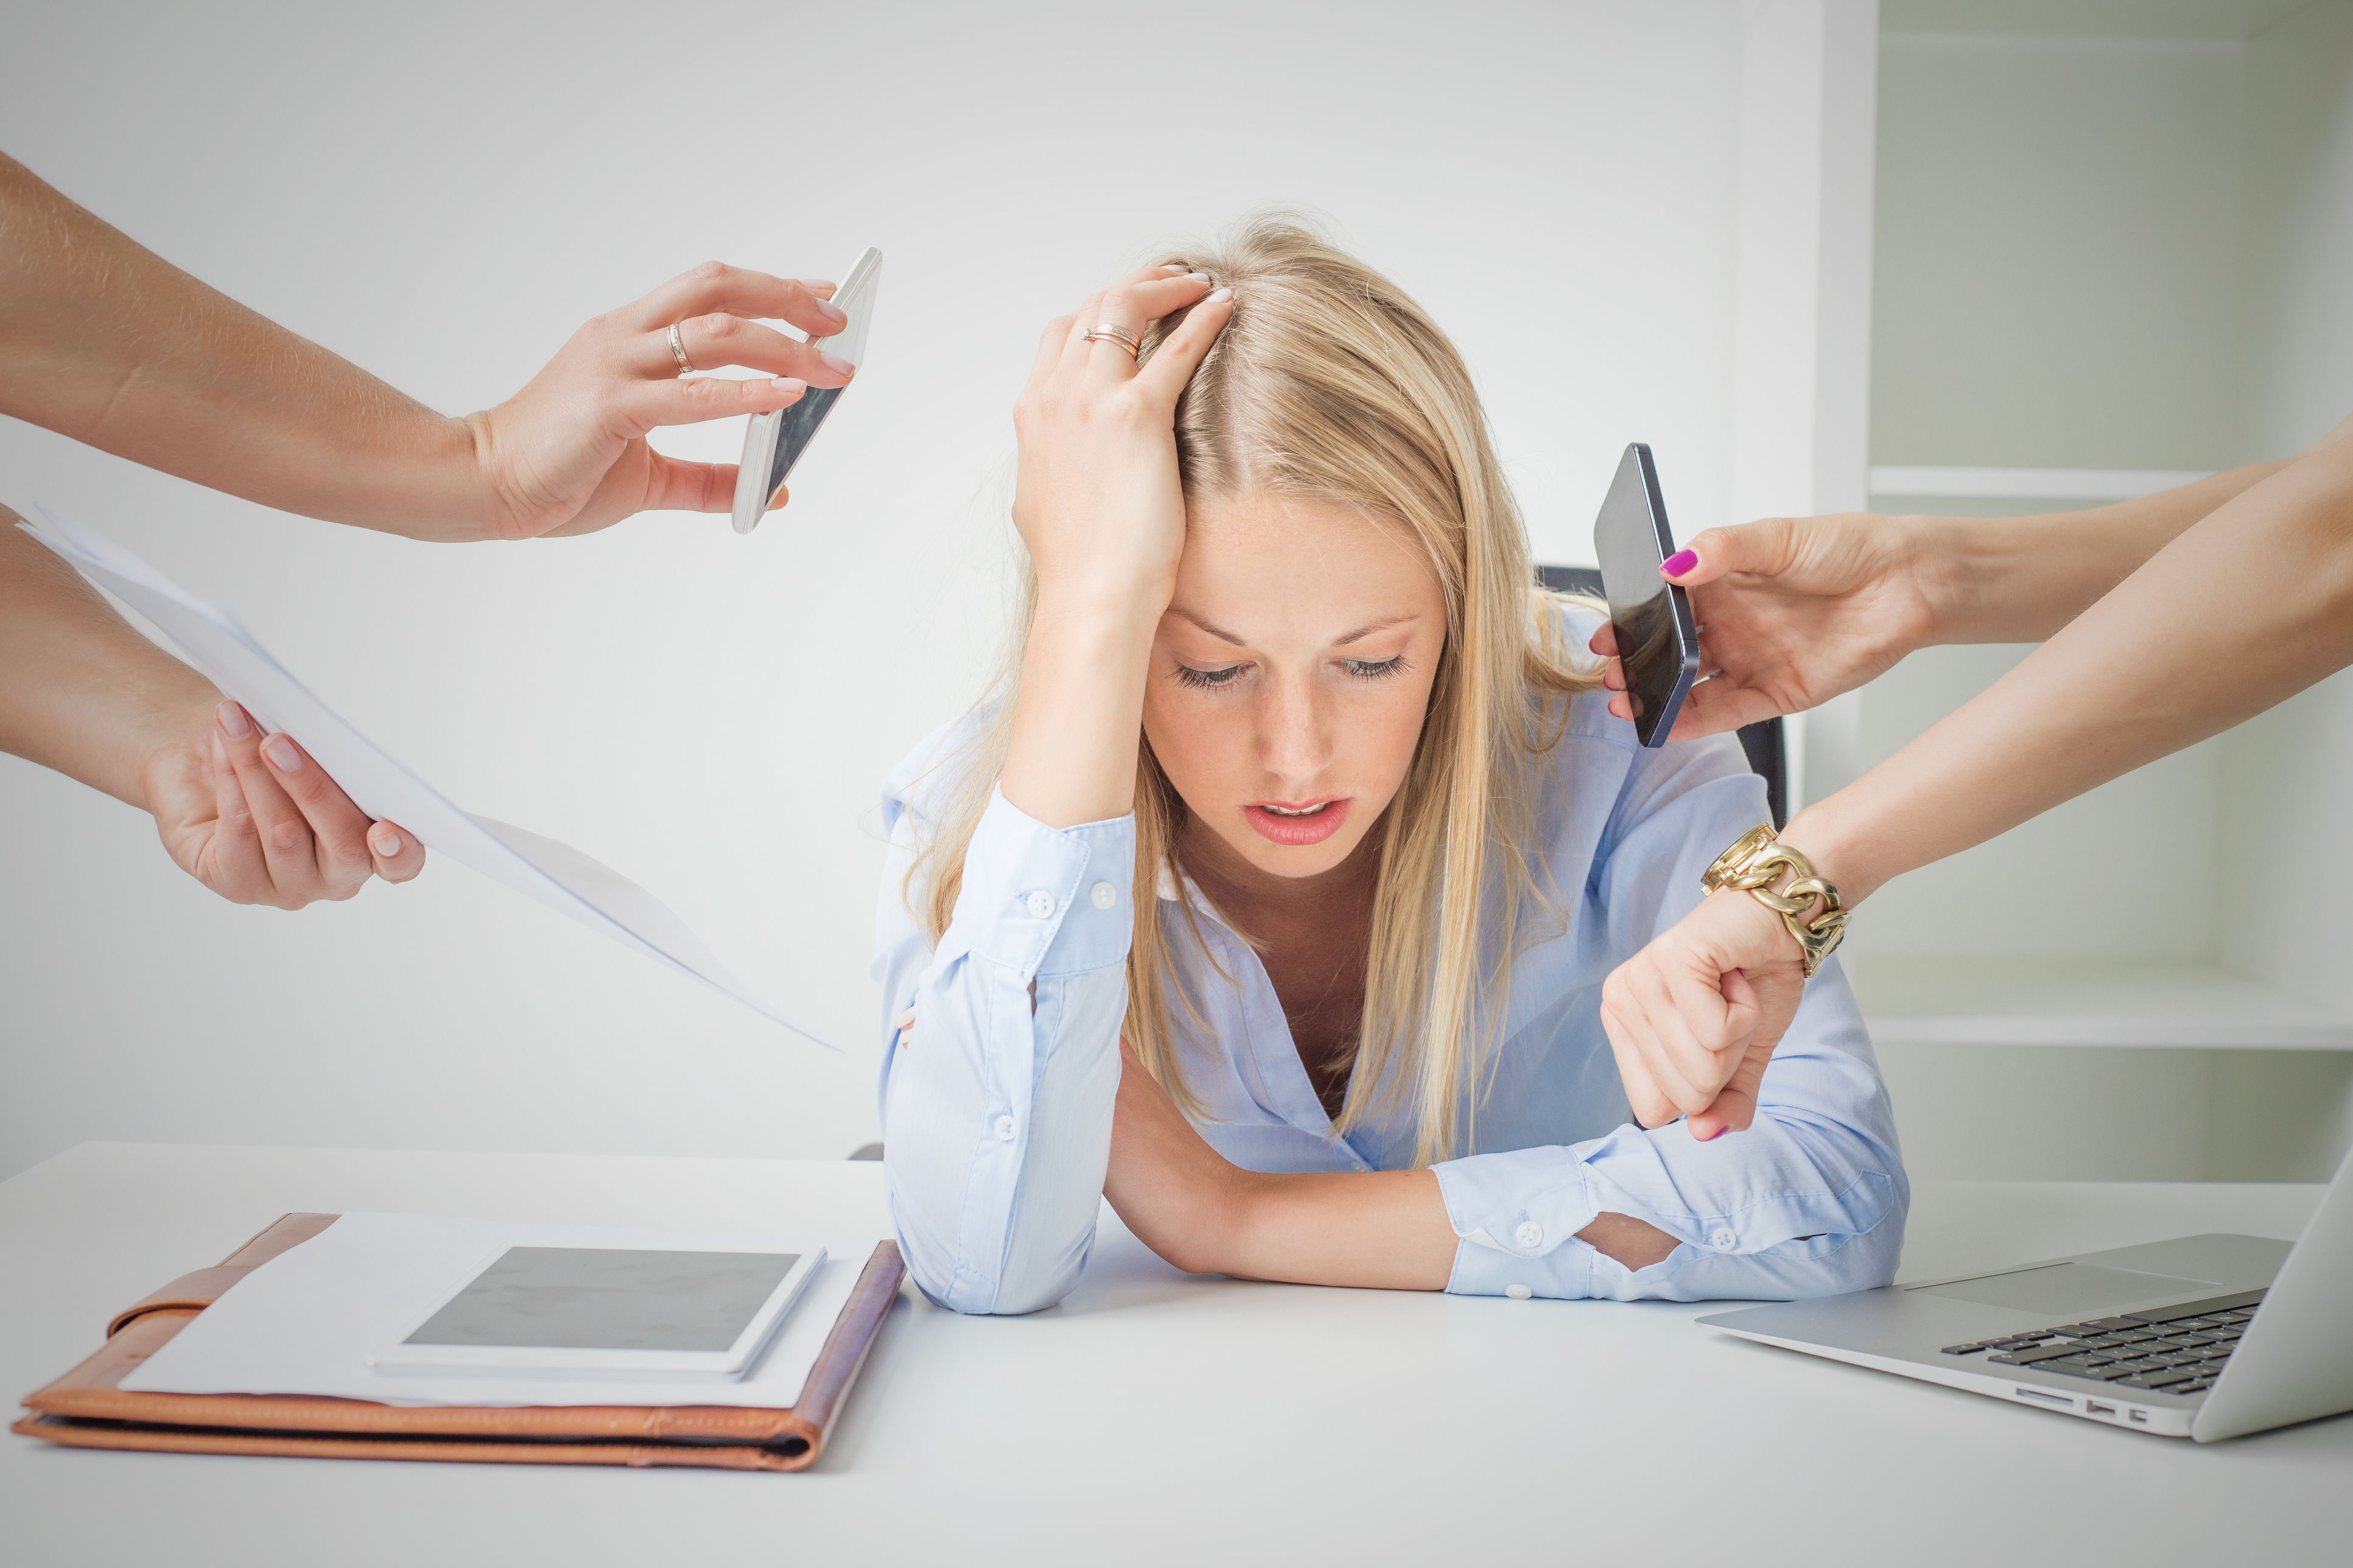 5 Tips for Handling Stress in the Workplace on avanteinsurance.com